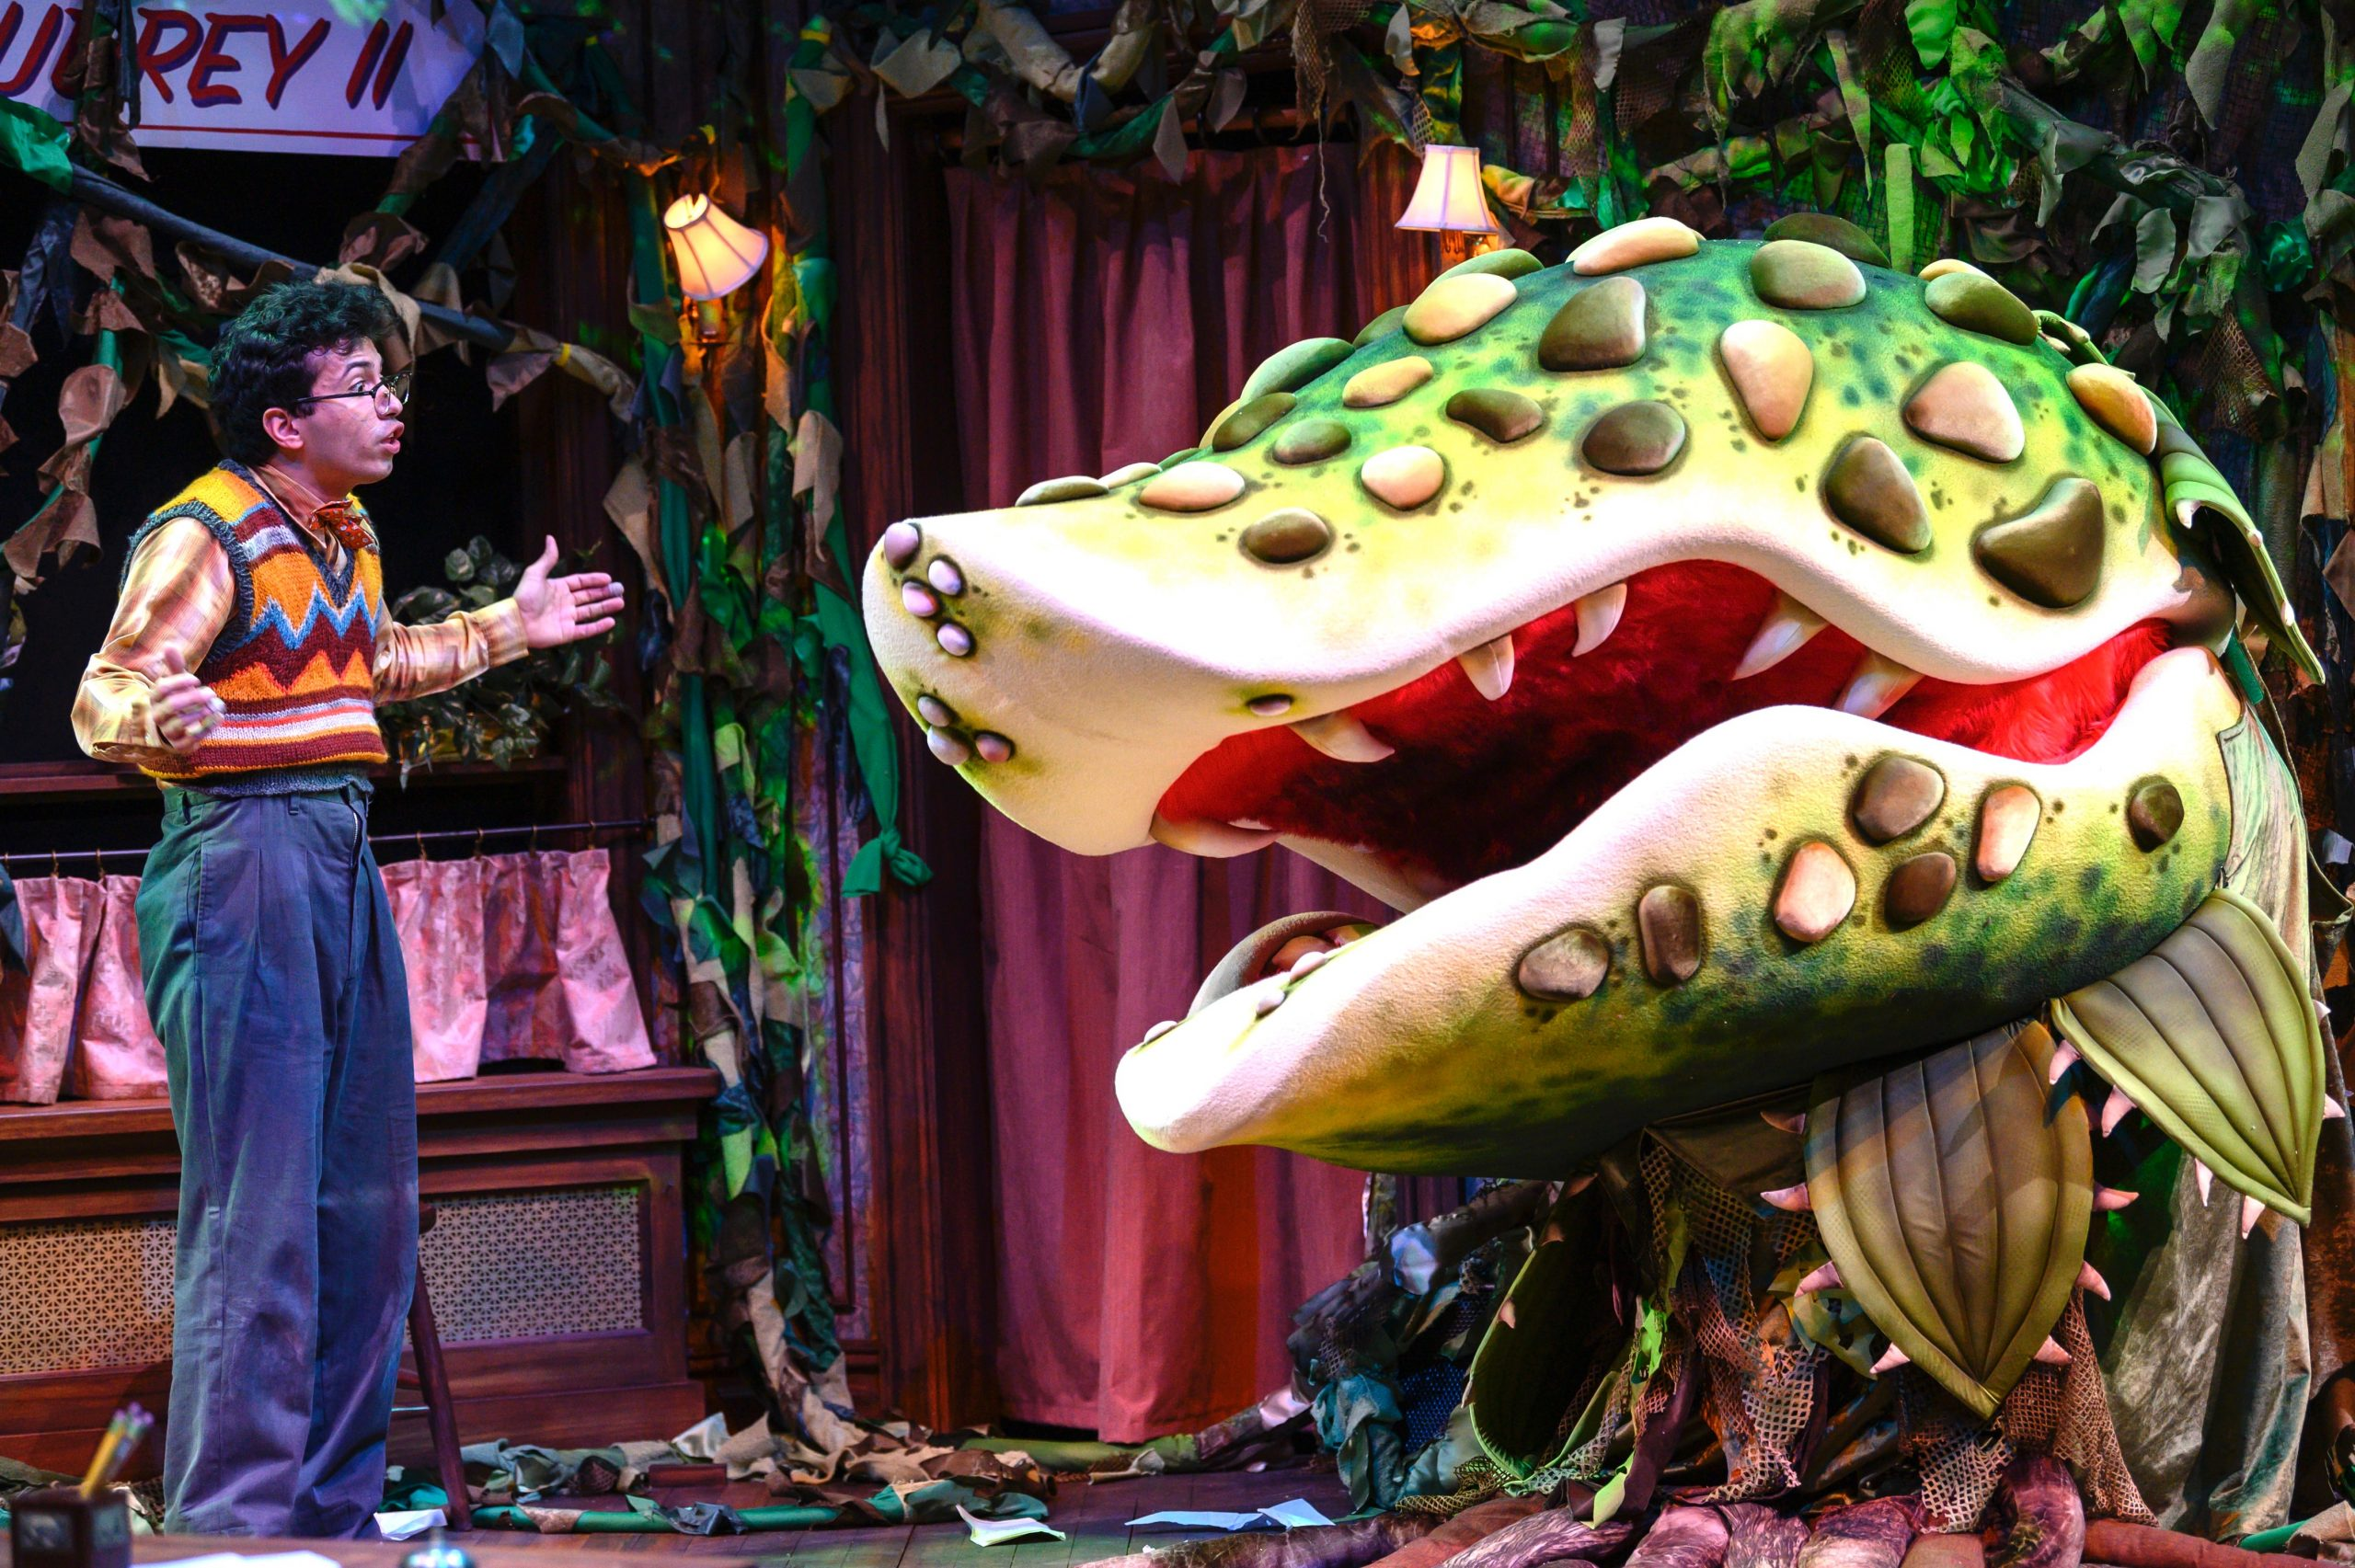 Seymour (Philippe Arroyo) tries to reason with that which is unreasonable in 'Little Shop of Horrors' at The Public. (photo: Michael Henninger)